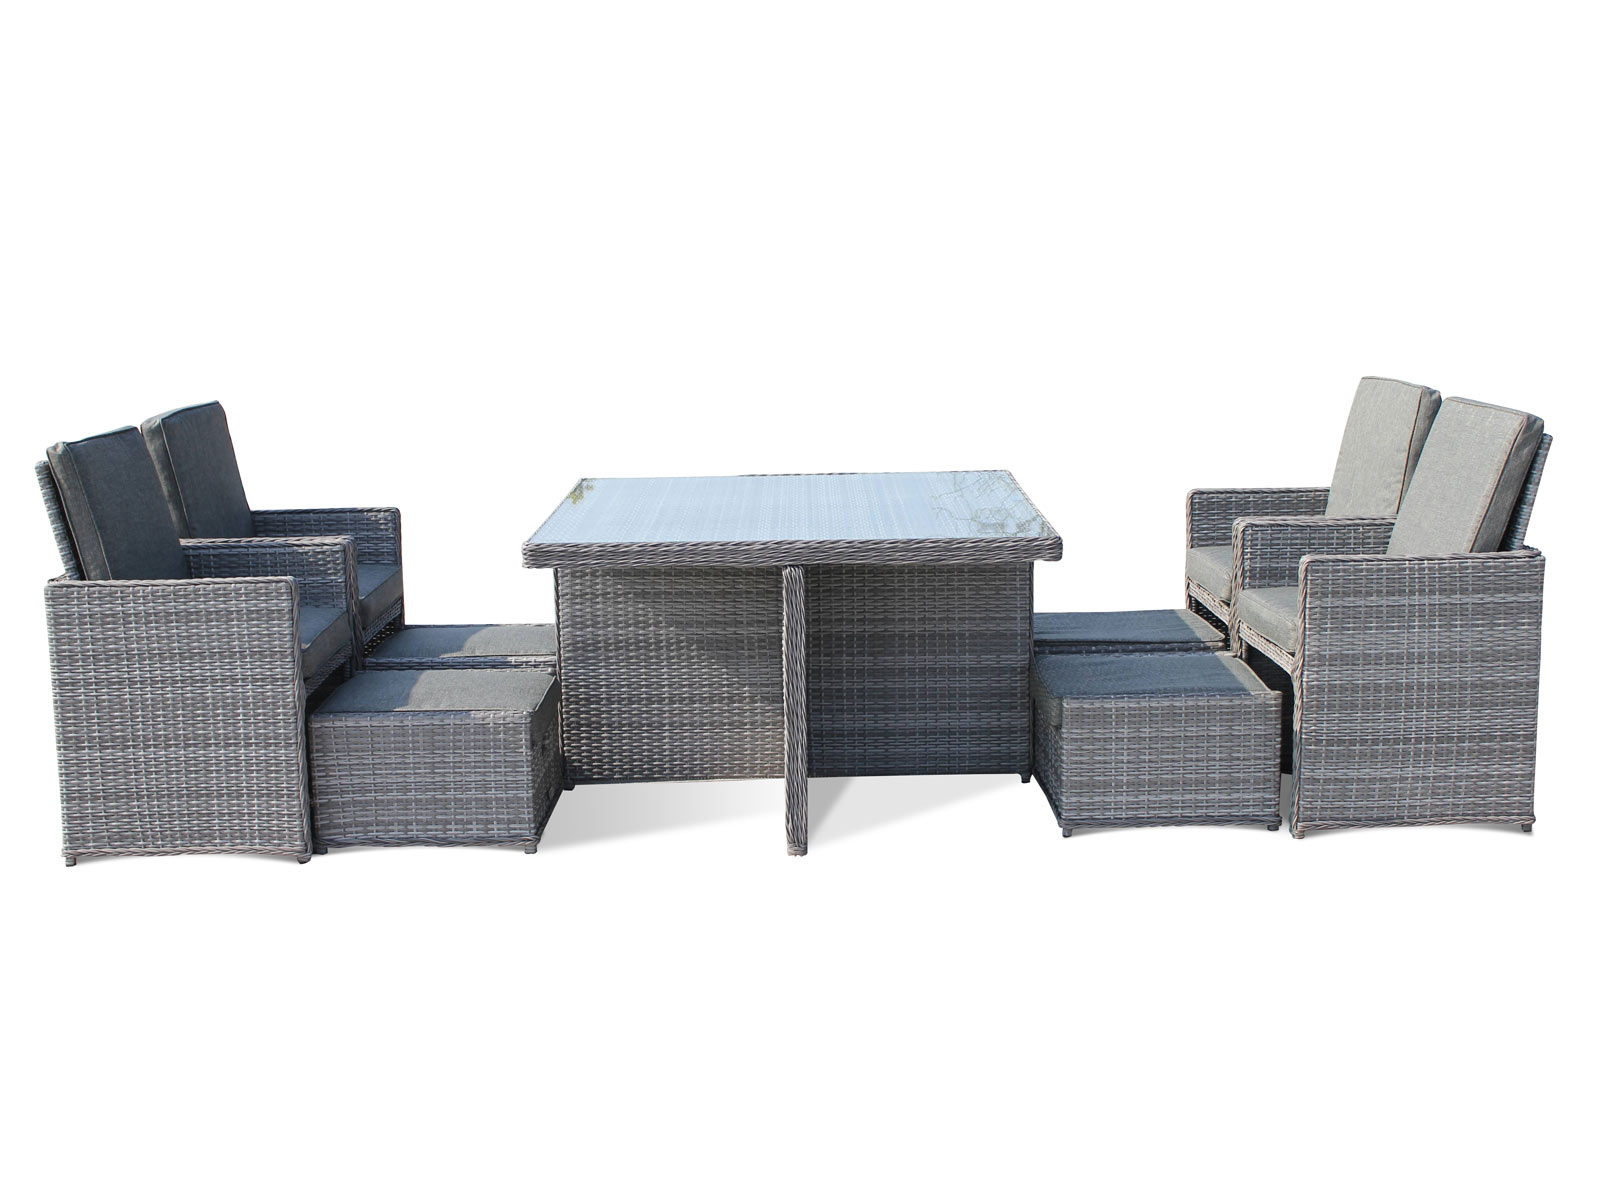 Grey Rattan Garden Furniture Uk Rattan garden furniture cube sets rattan furniture rattan direct barcelona 9 piece rattan garden cube set in grey workwithnaturefo